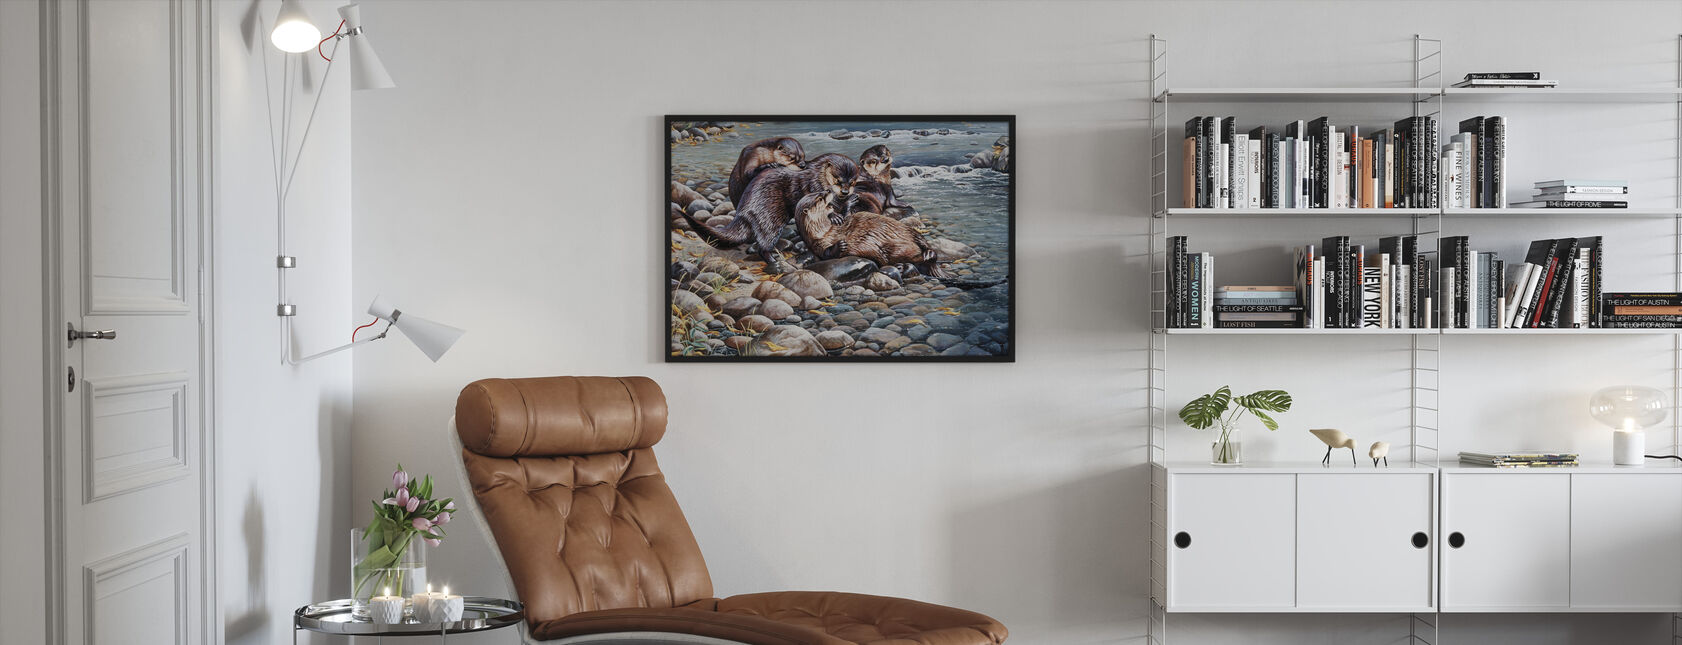 Otters Playing - Framed print - Living Room